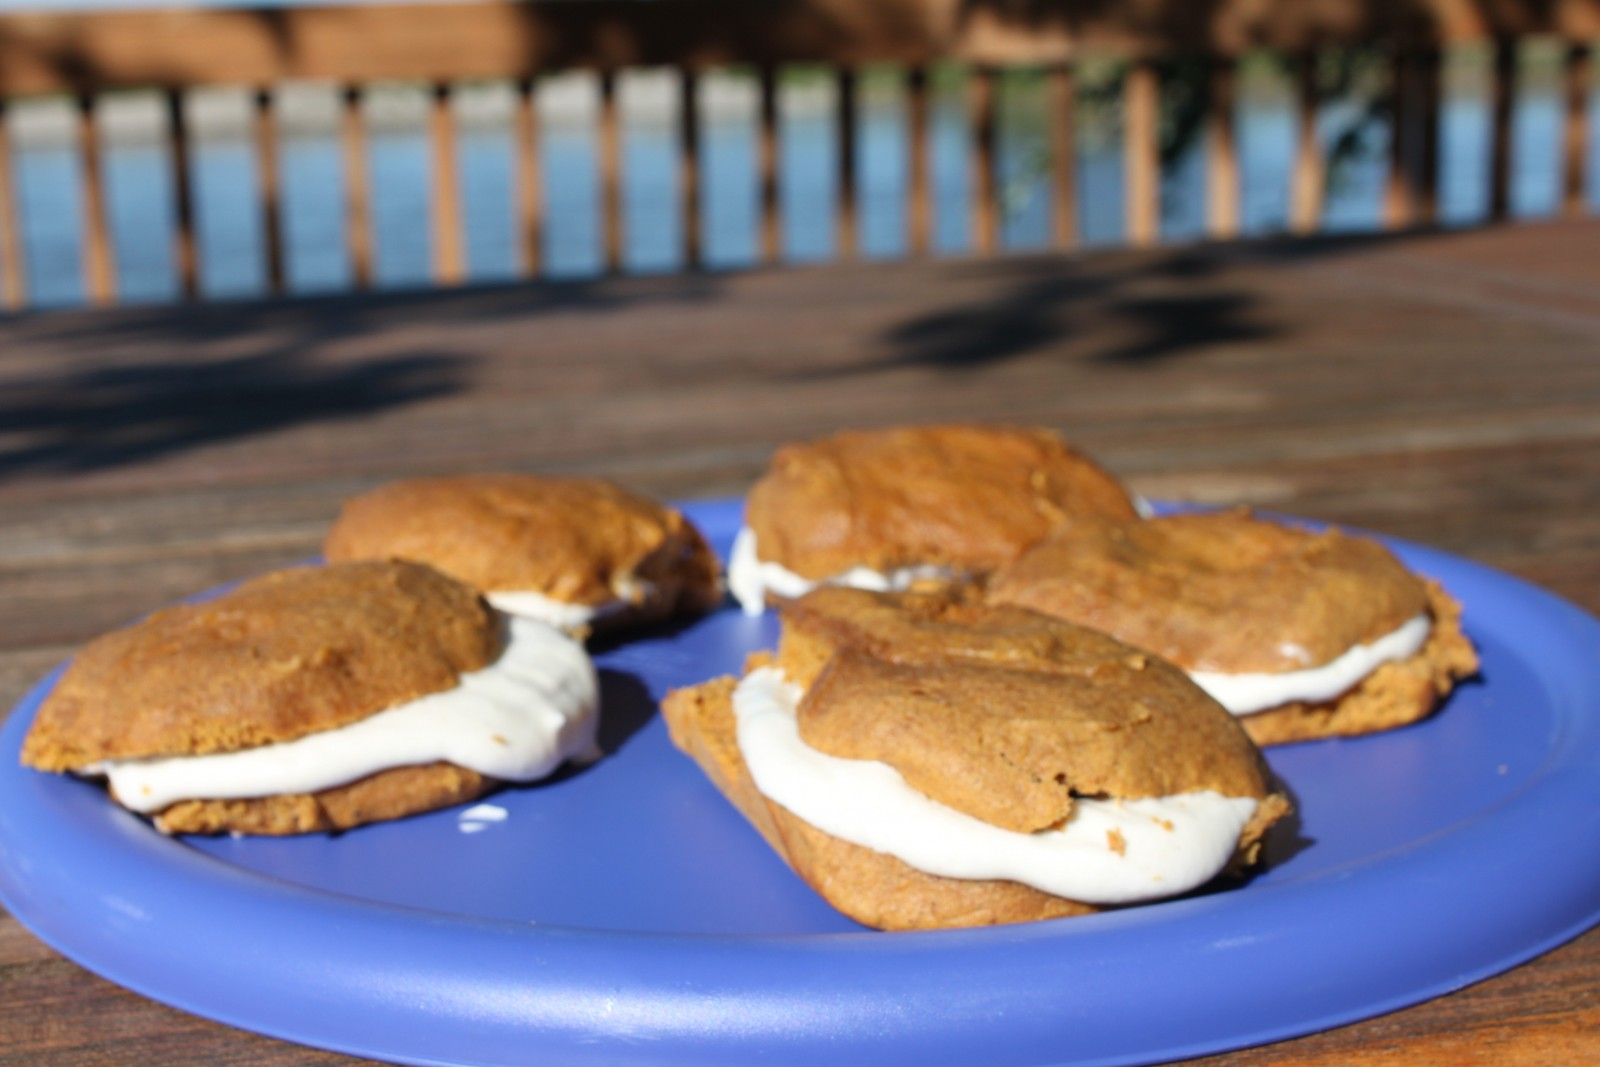 Pumpkin Spice Mini-Cakes with Cinnamon Cream Cheese Frosting by Capt. John Wampler